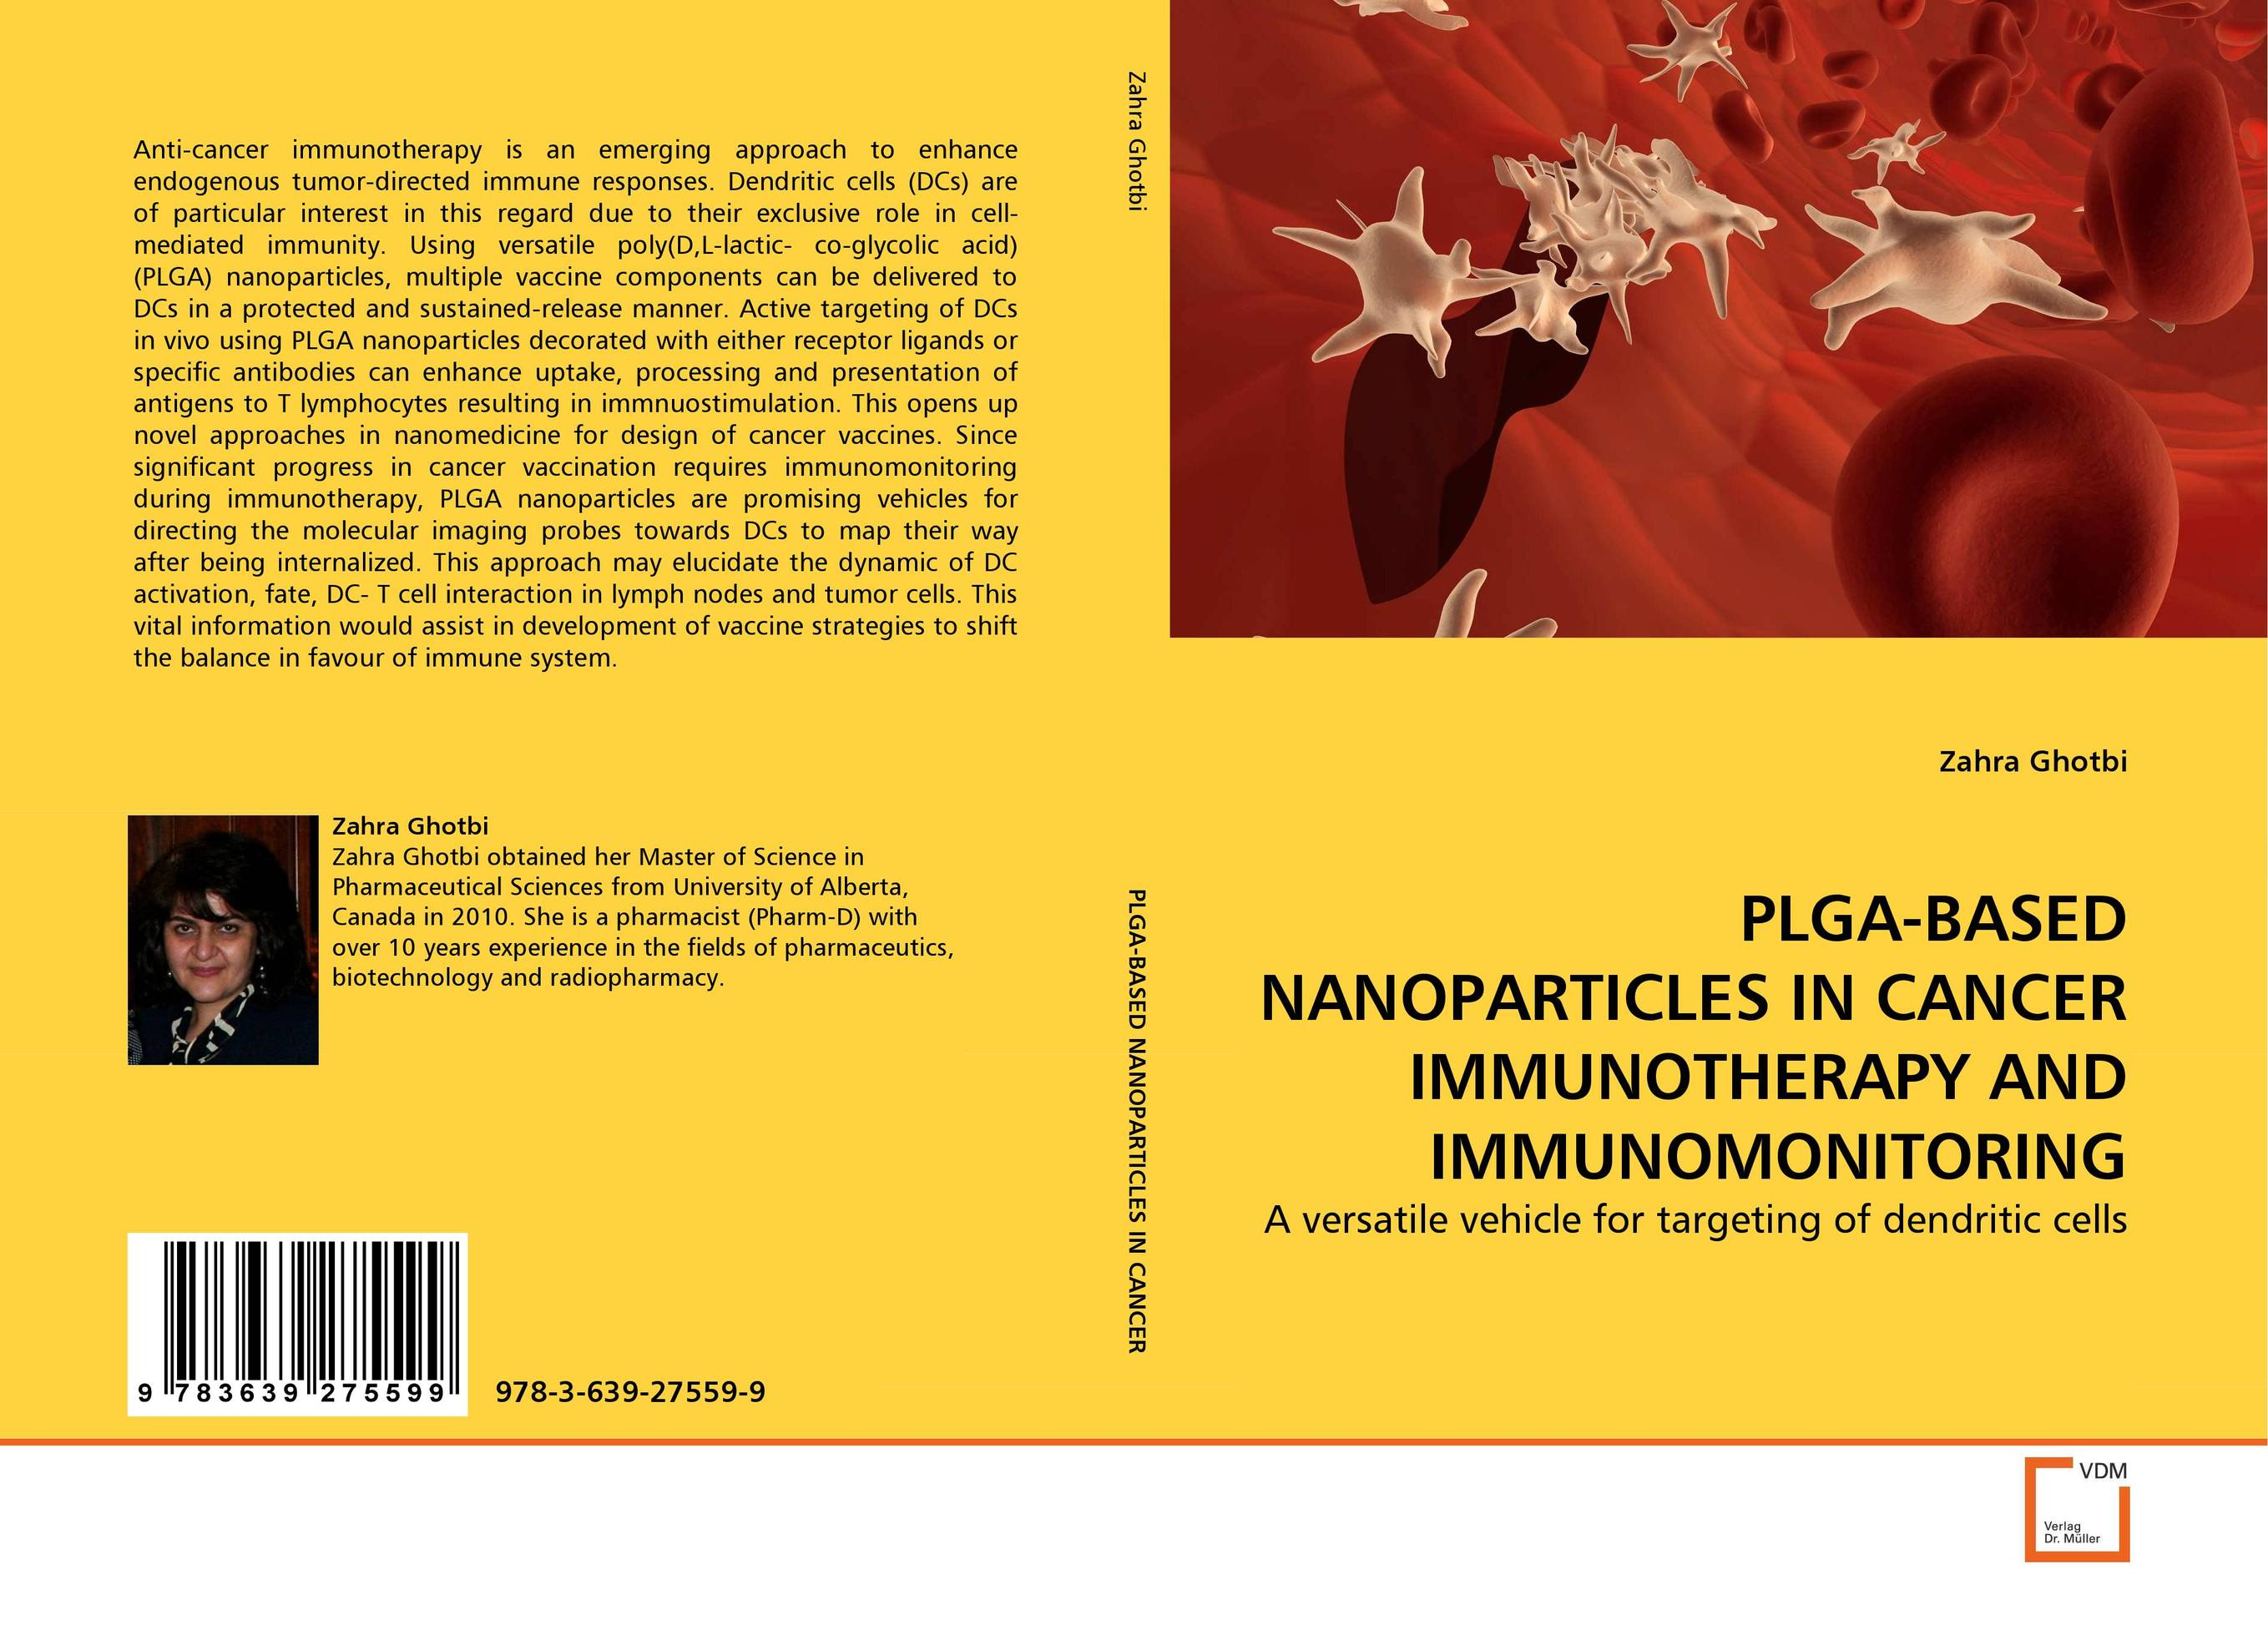 PLGA-BASED NANOPARTICLES IN CANCER IMMUNOTHERAPY AND IMMUNOMONITORING elementary number theory with applications student solutions manual